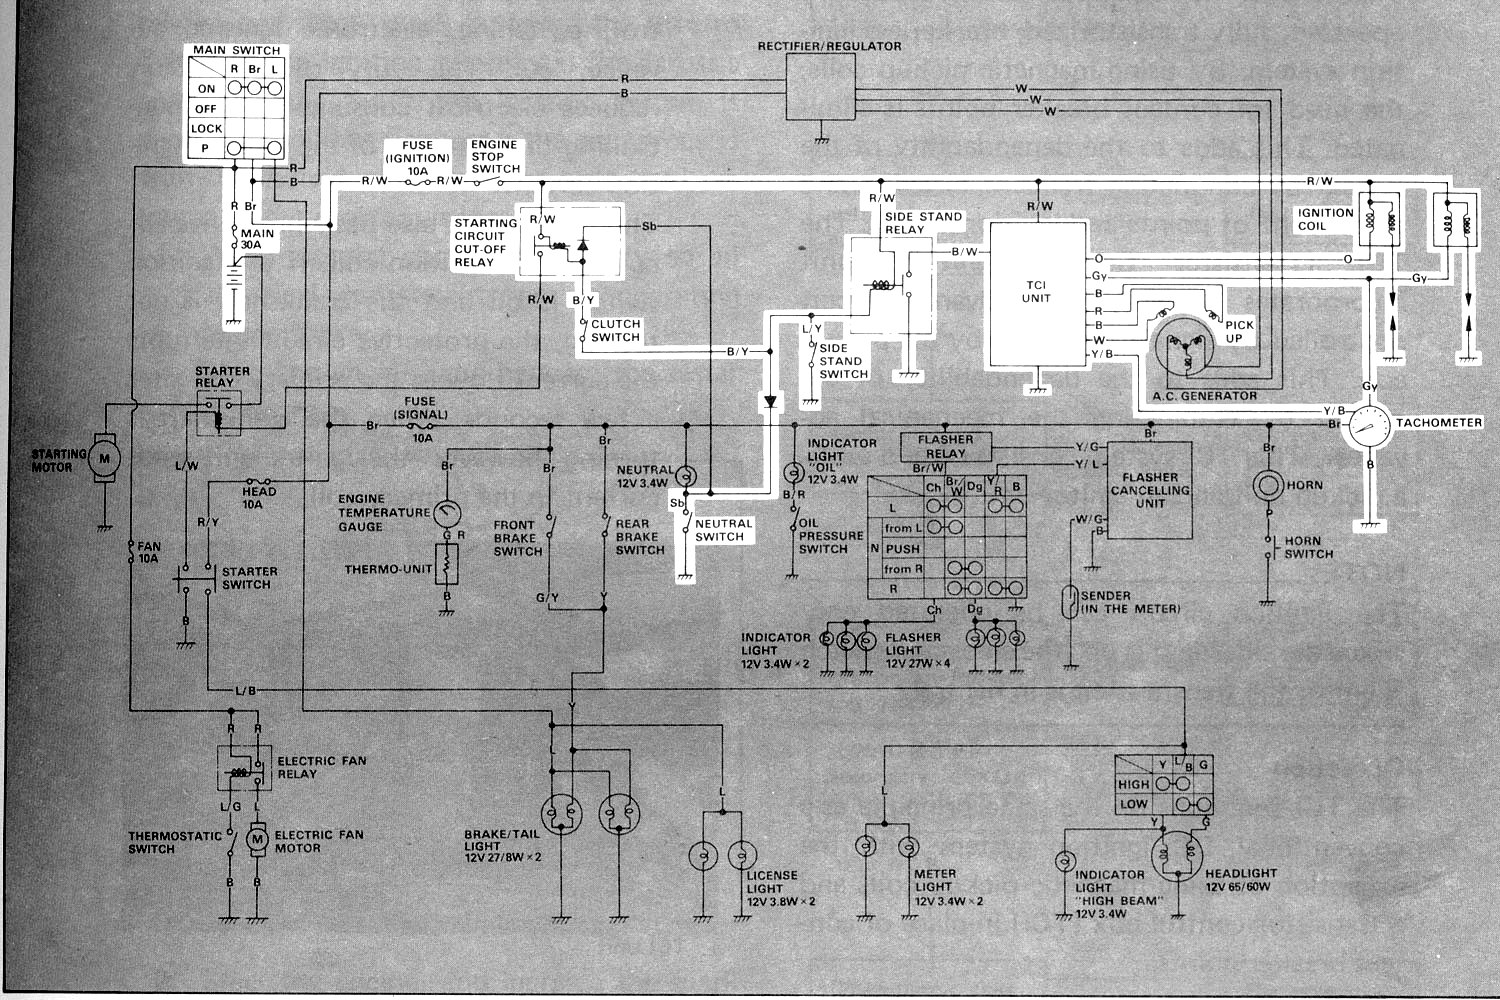 0040 yamaha vision ignition images honda wave 100 electrical wiring diagram pdf at soozxer.org